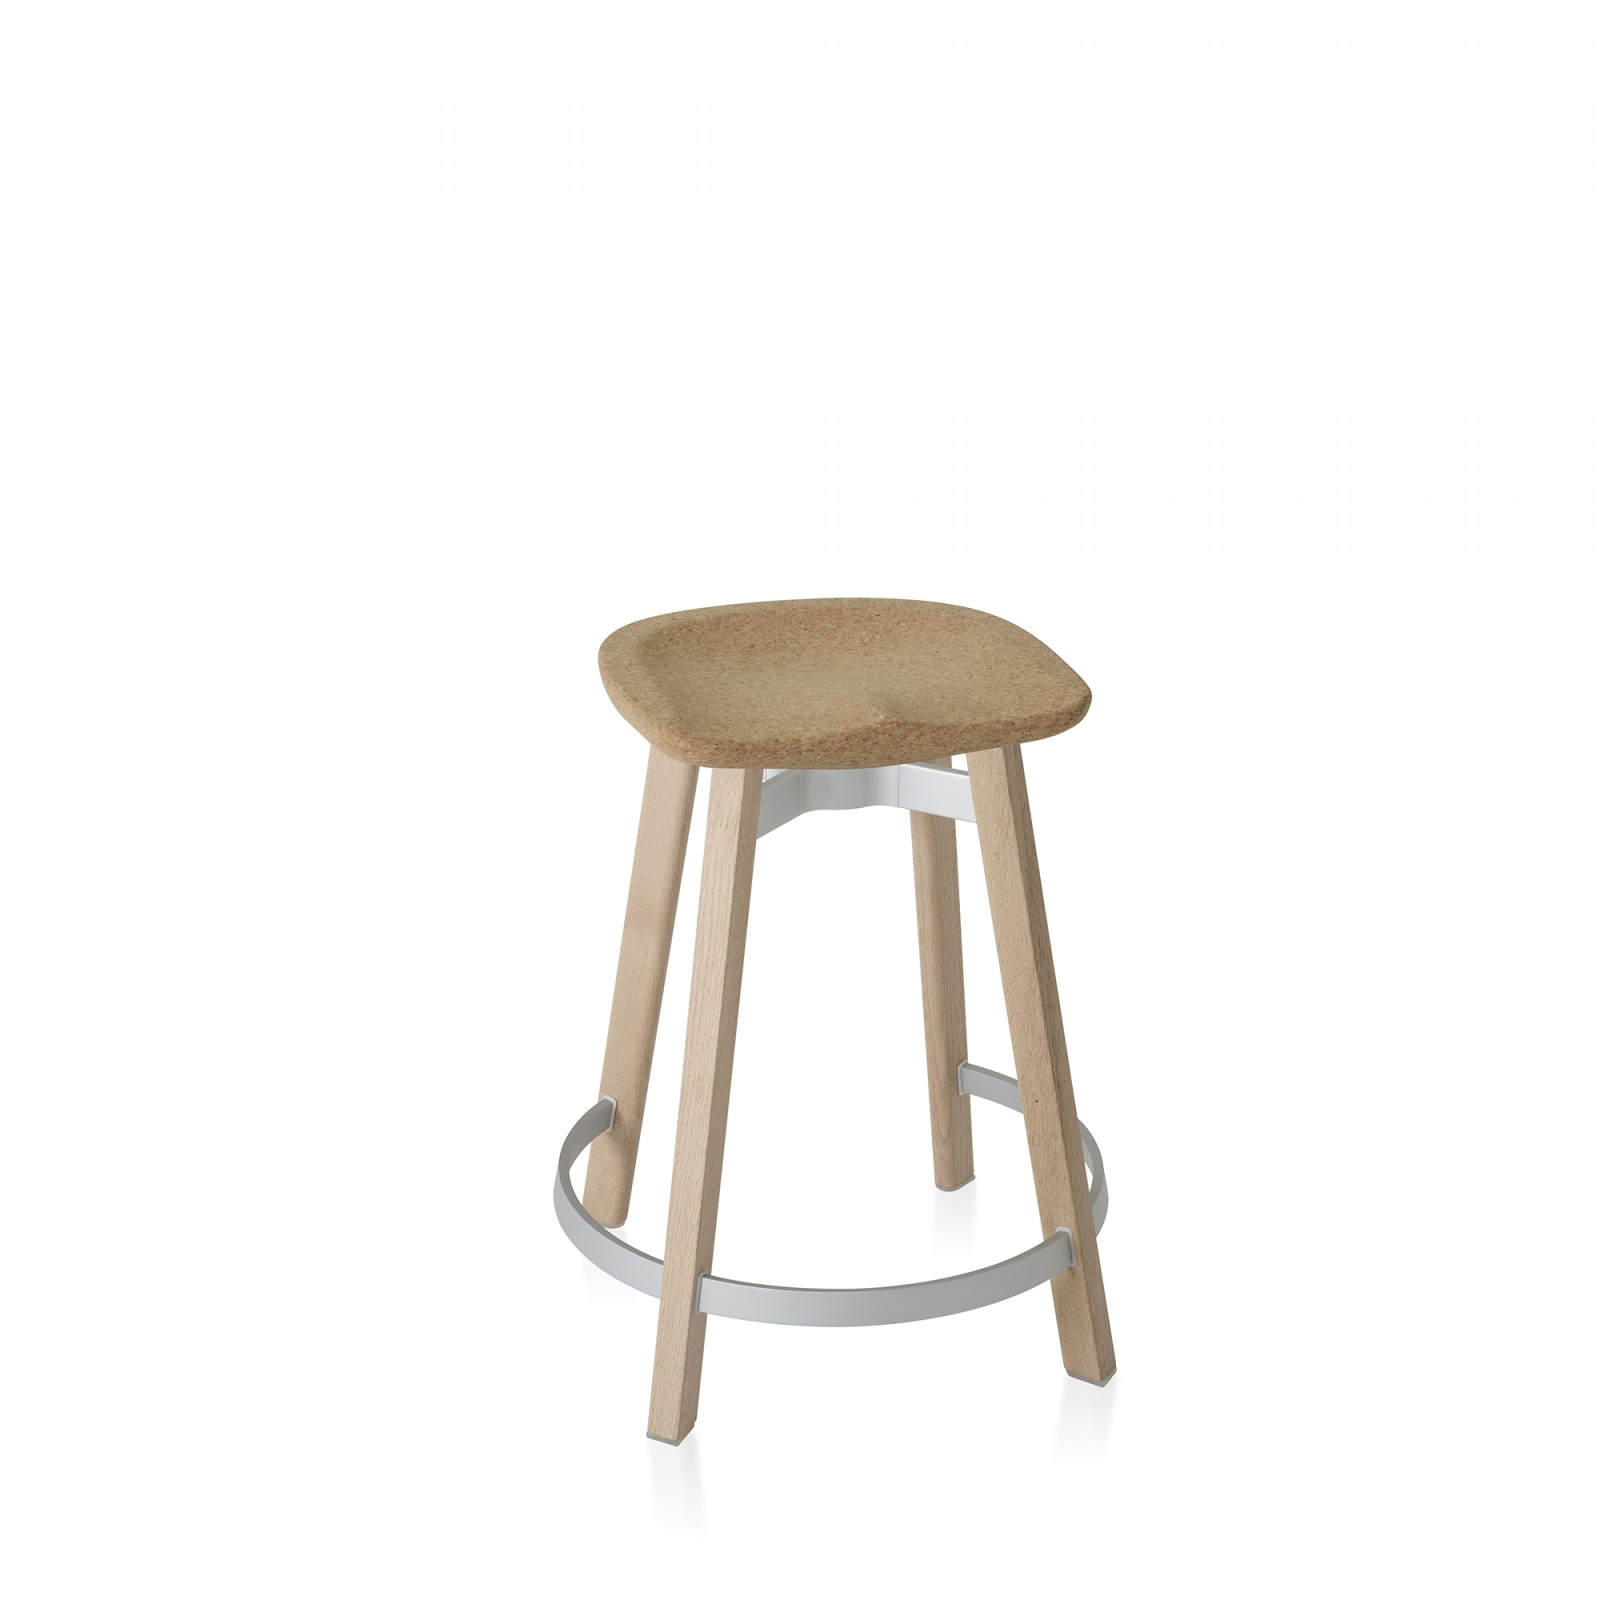 Su Counter Stool Natural Wood, Cork